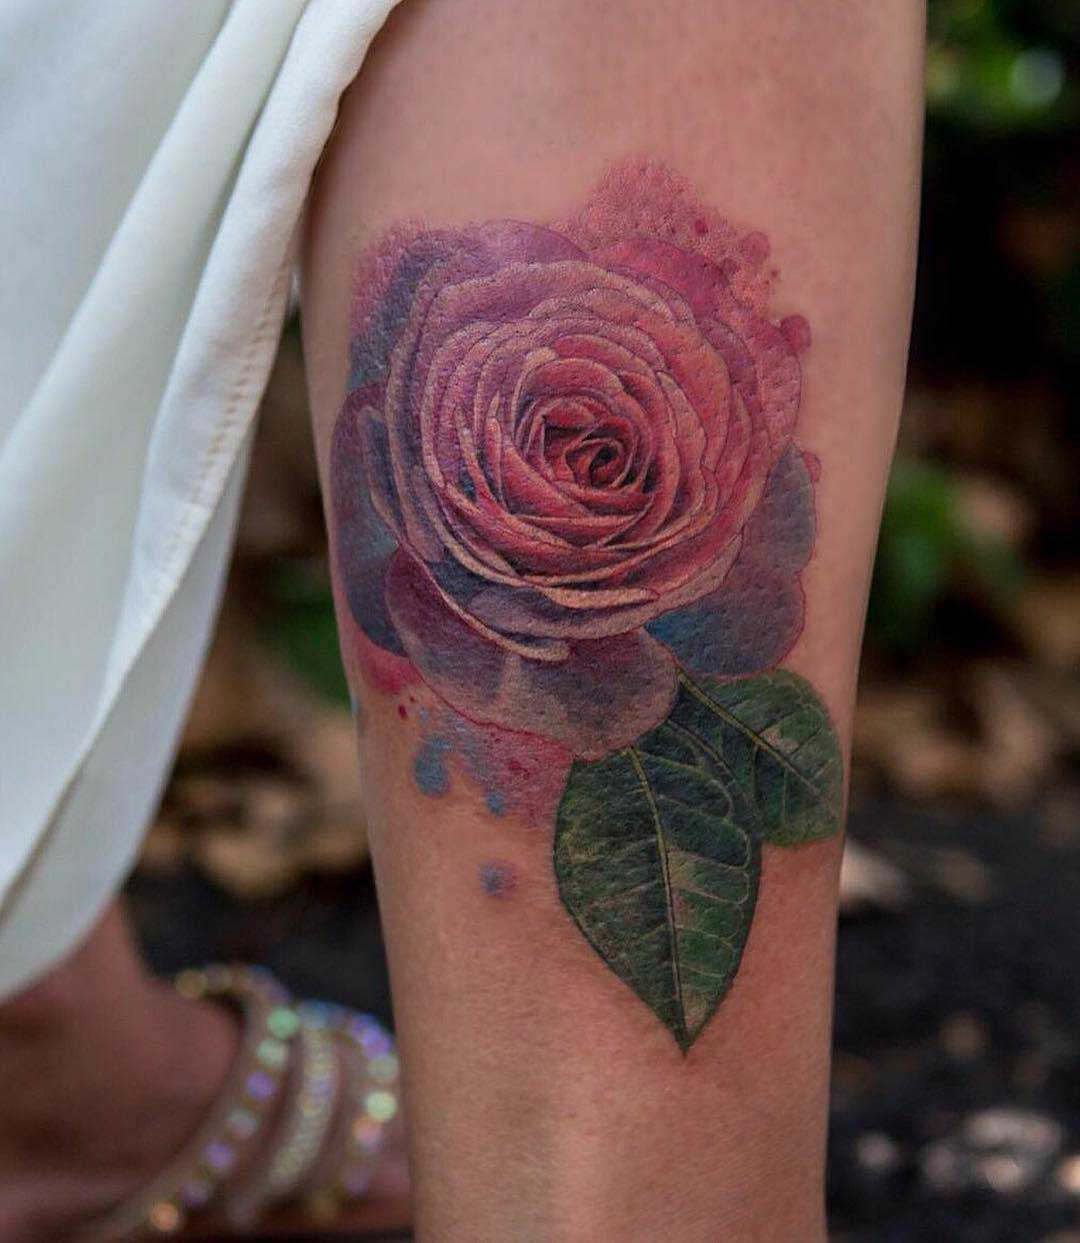 pink rose tattoo on forearm